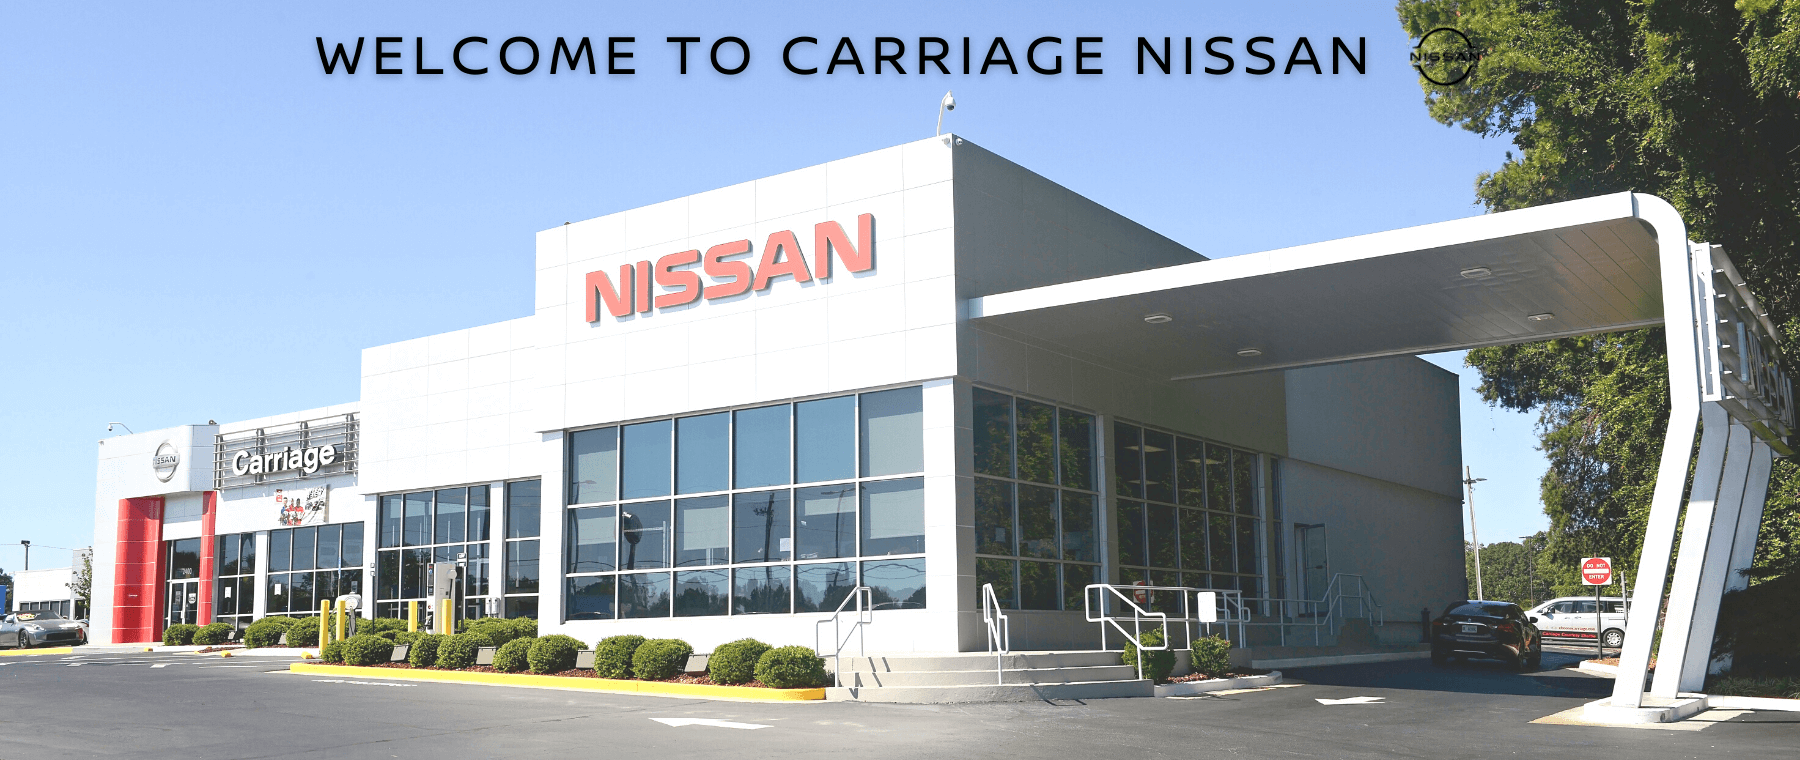 2222Welcome to Carriage Nissan (1)